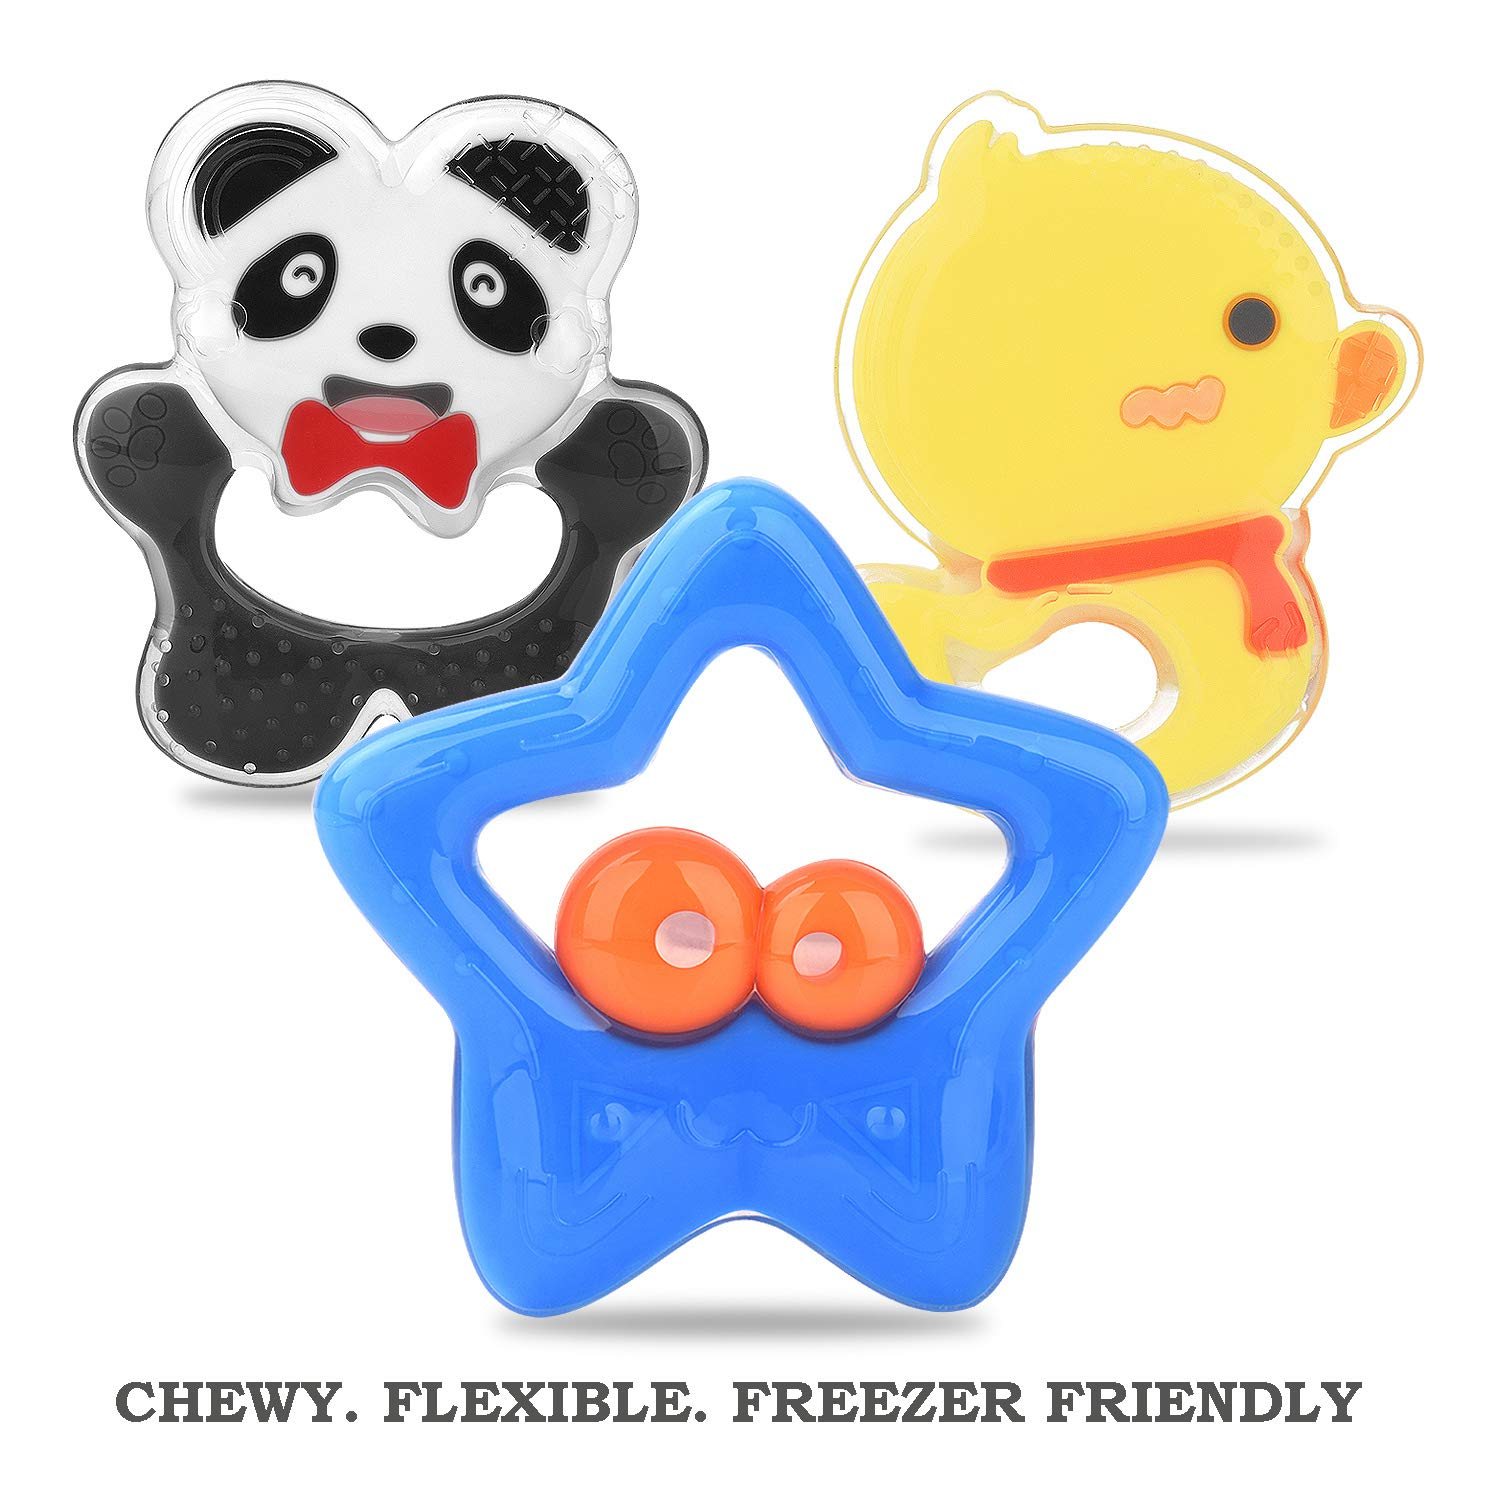 BPA Free Teething Toys for Infant Dishwasher and Freezer Safe Teether Set for Baby Easy to Grab and Clean Pack of 3 Colorful Design Giftty Baby Teether